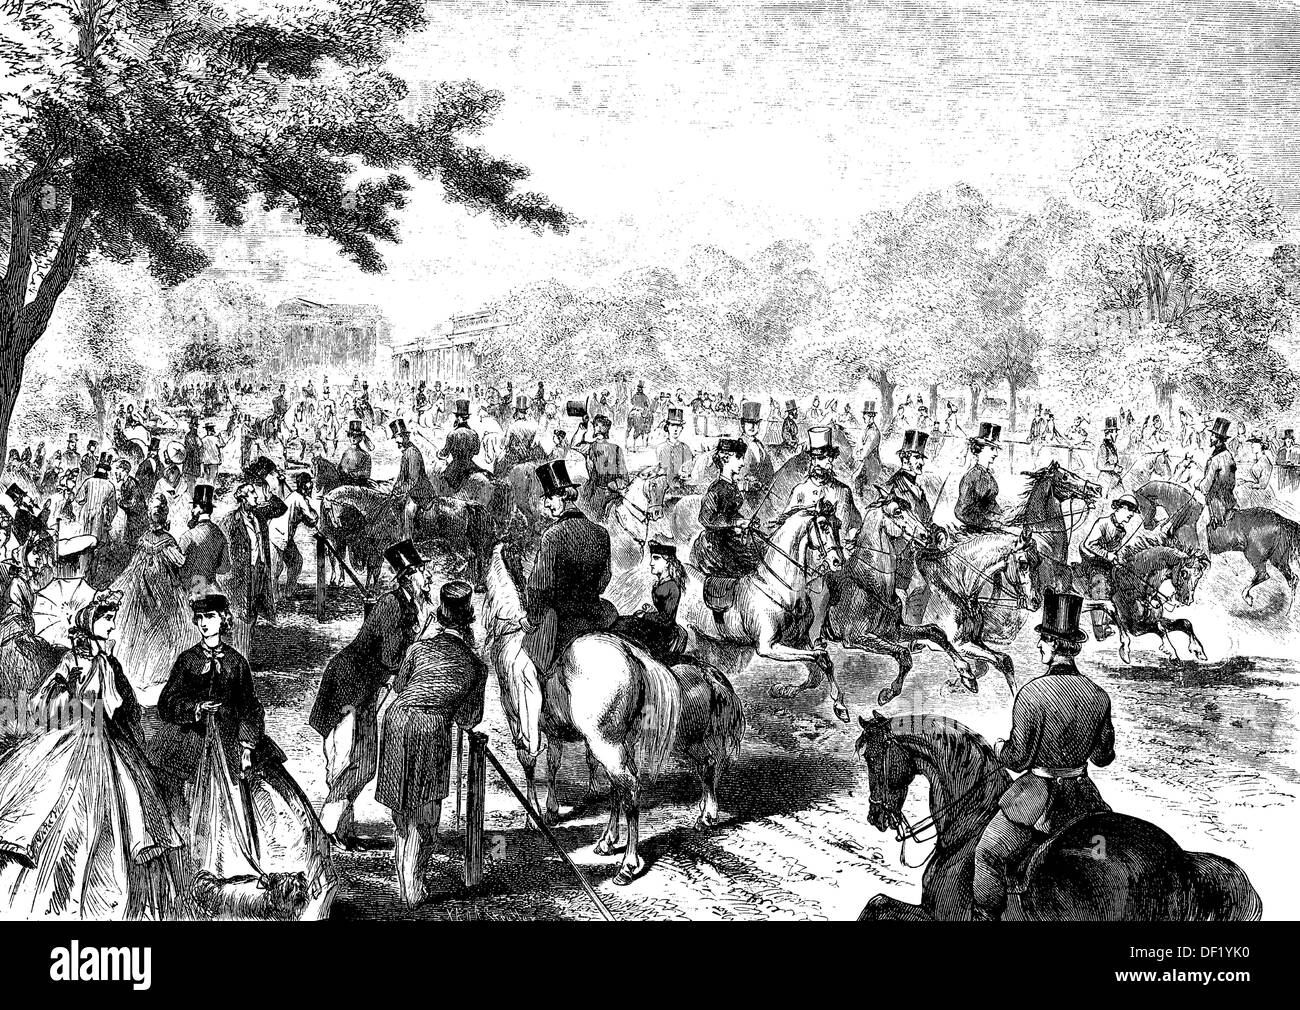 The Amazon Corso of Rotten Row in Hyde Park, Londen, woodcut from 1864 - Stock Image